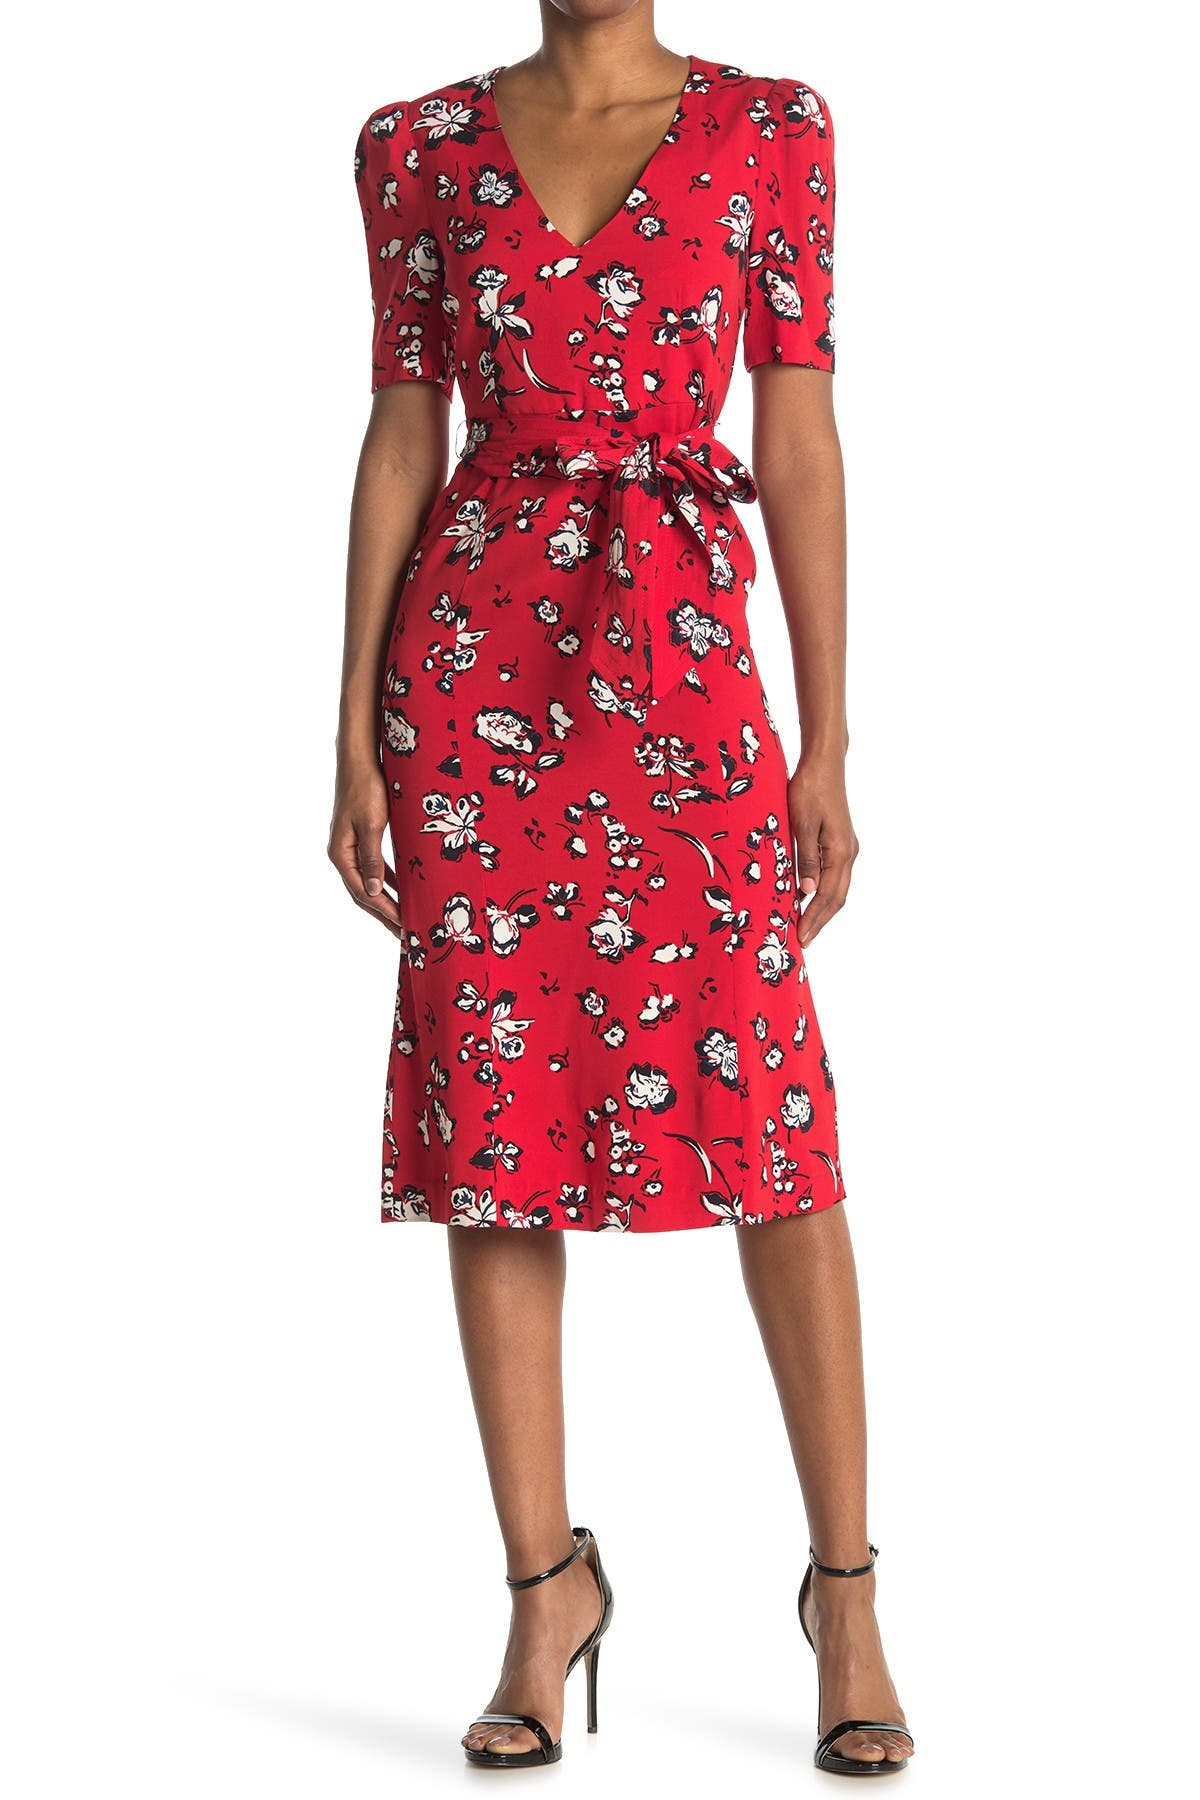 Image of VERONICA BEARD Joia Floral Print Midi Dress